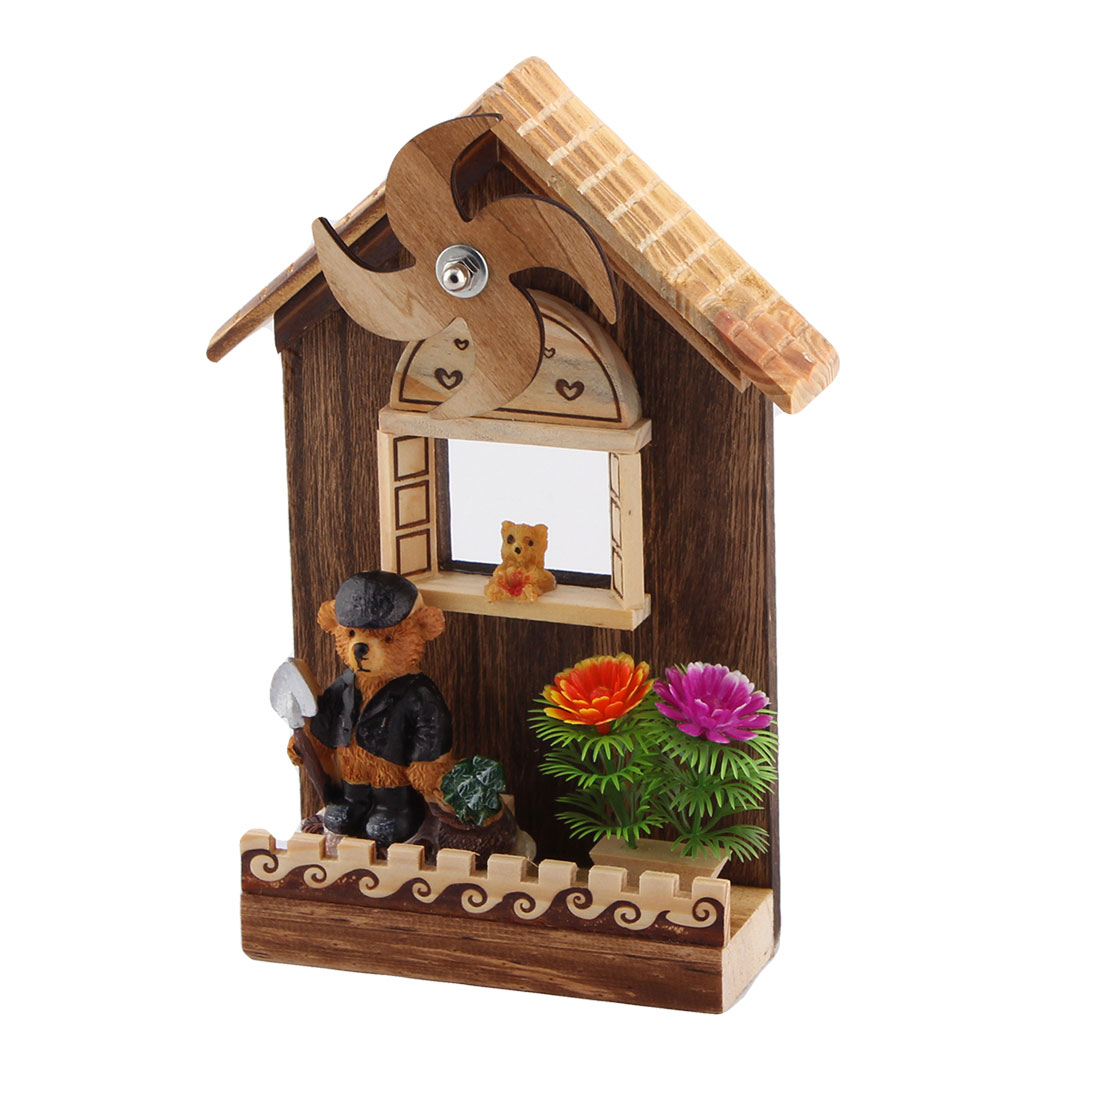 Office Table Wooden Clockwork Rotation Windmill Bear Ornament Handmade Music Box